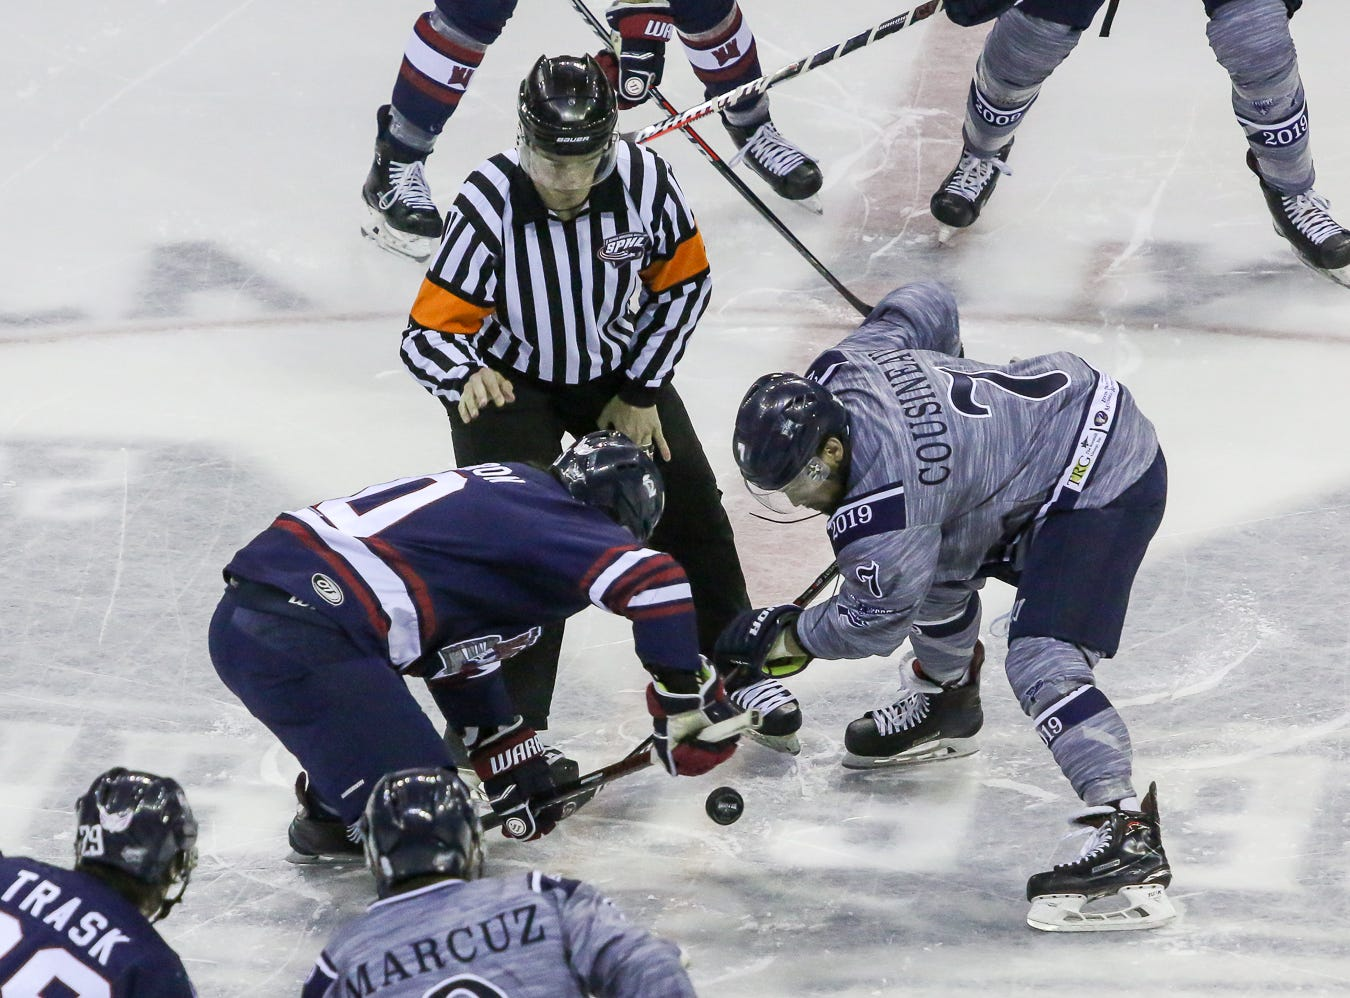 Pensacola's Josh Cousineau (7) takes the opening faceoff against Macon's Caleb Cameron (10) during the last home game of the regular season at the Pensacola Bay Center on Saturday, March 23, 2019. With over 4,300 people in attendance for Pensacola's 3-1 victory, the Ice Flyers mark six straight years of over 100,000 people at their home games each season. The team has won their last five games in a row and will finish out their last five games on the road before entering the playoffs in a couple of weeks.